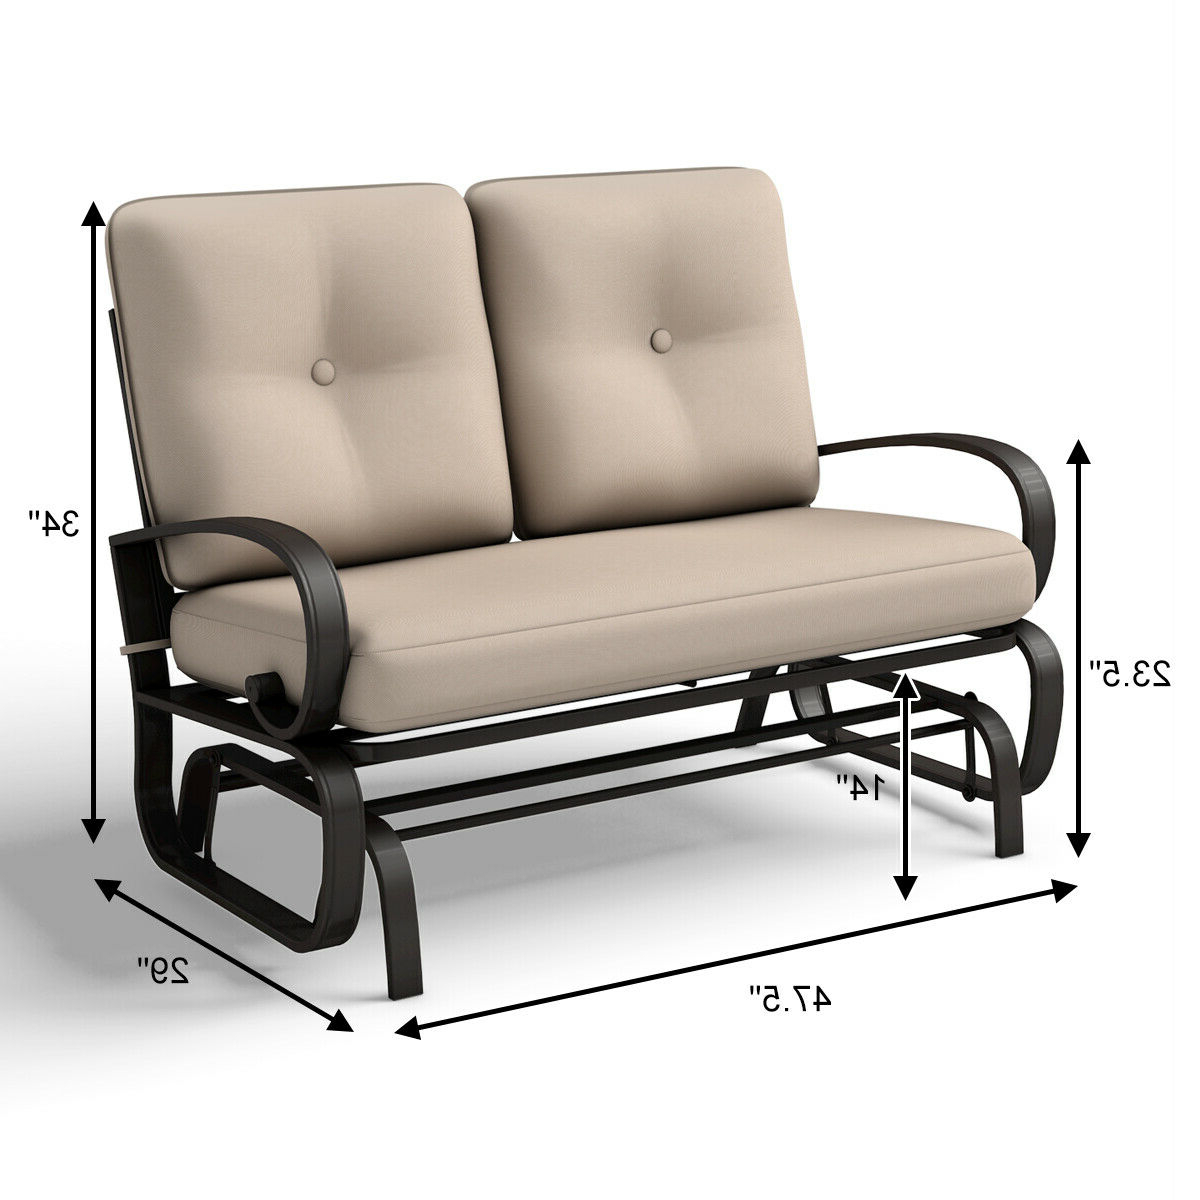 Most Recently Released Outdoor Steel Patio Swing Glider Benches For Glider Outdoor Patio Rocking Bench Loveseat Cushioned Seat Steel Frame Furniture (View 19 of 30)